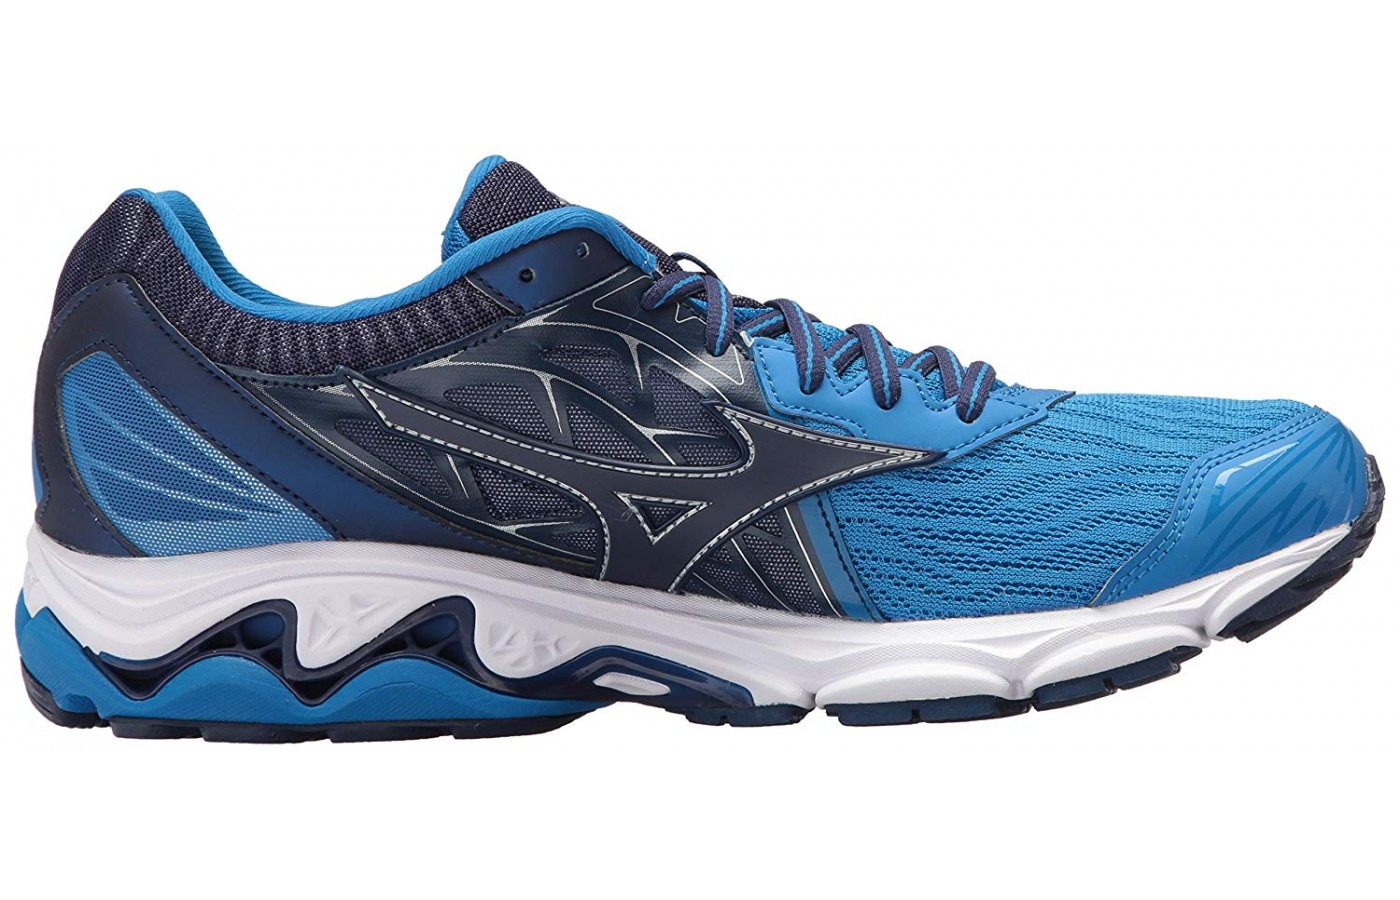 The Mizuno Wave Inspire 14 protects the leg